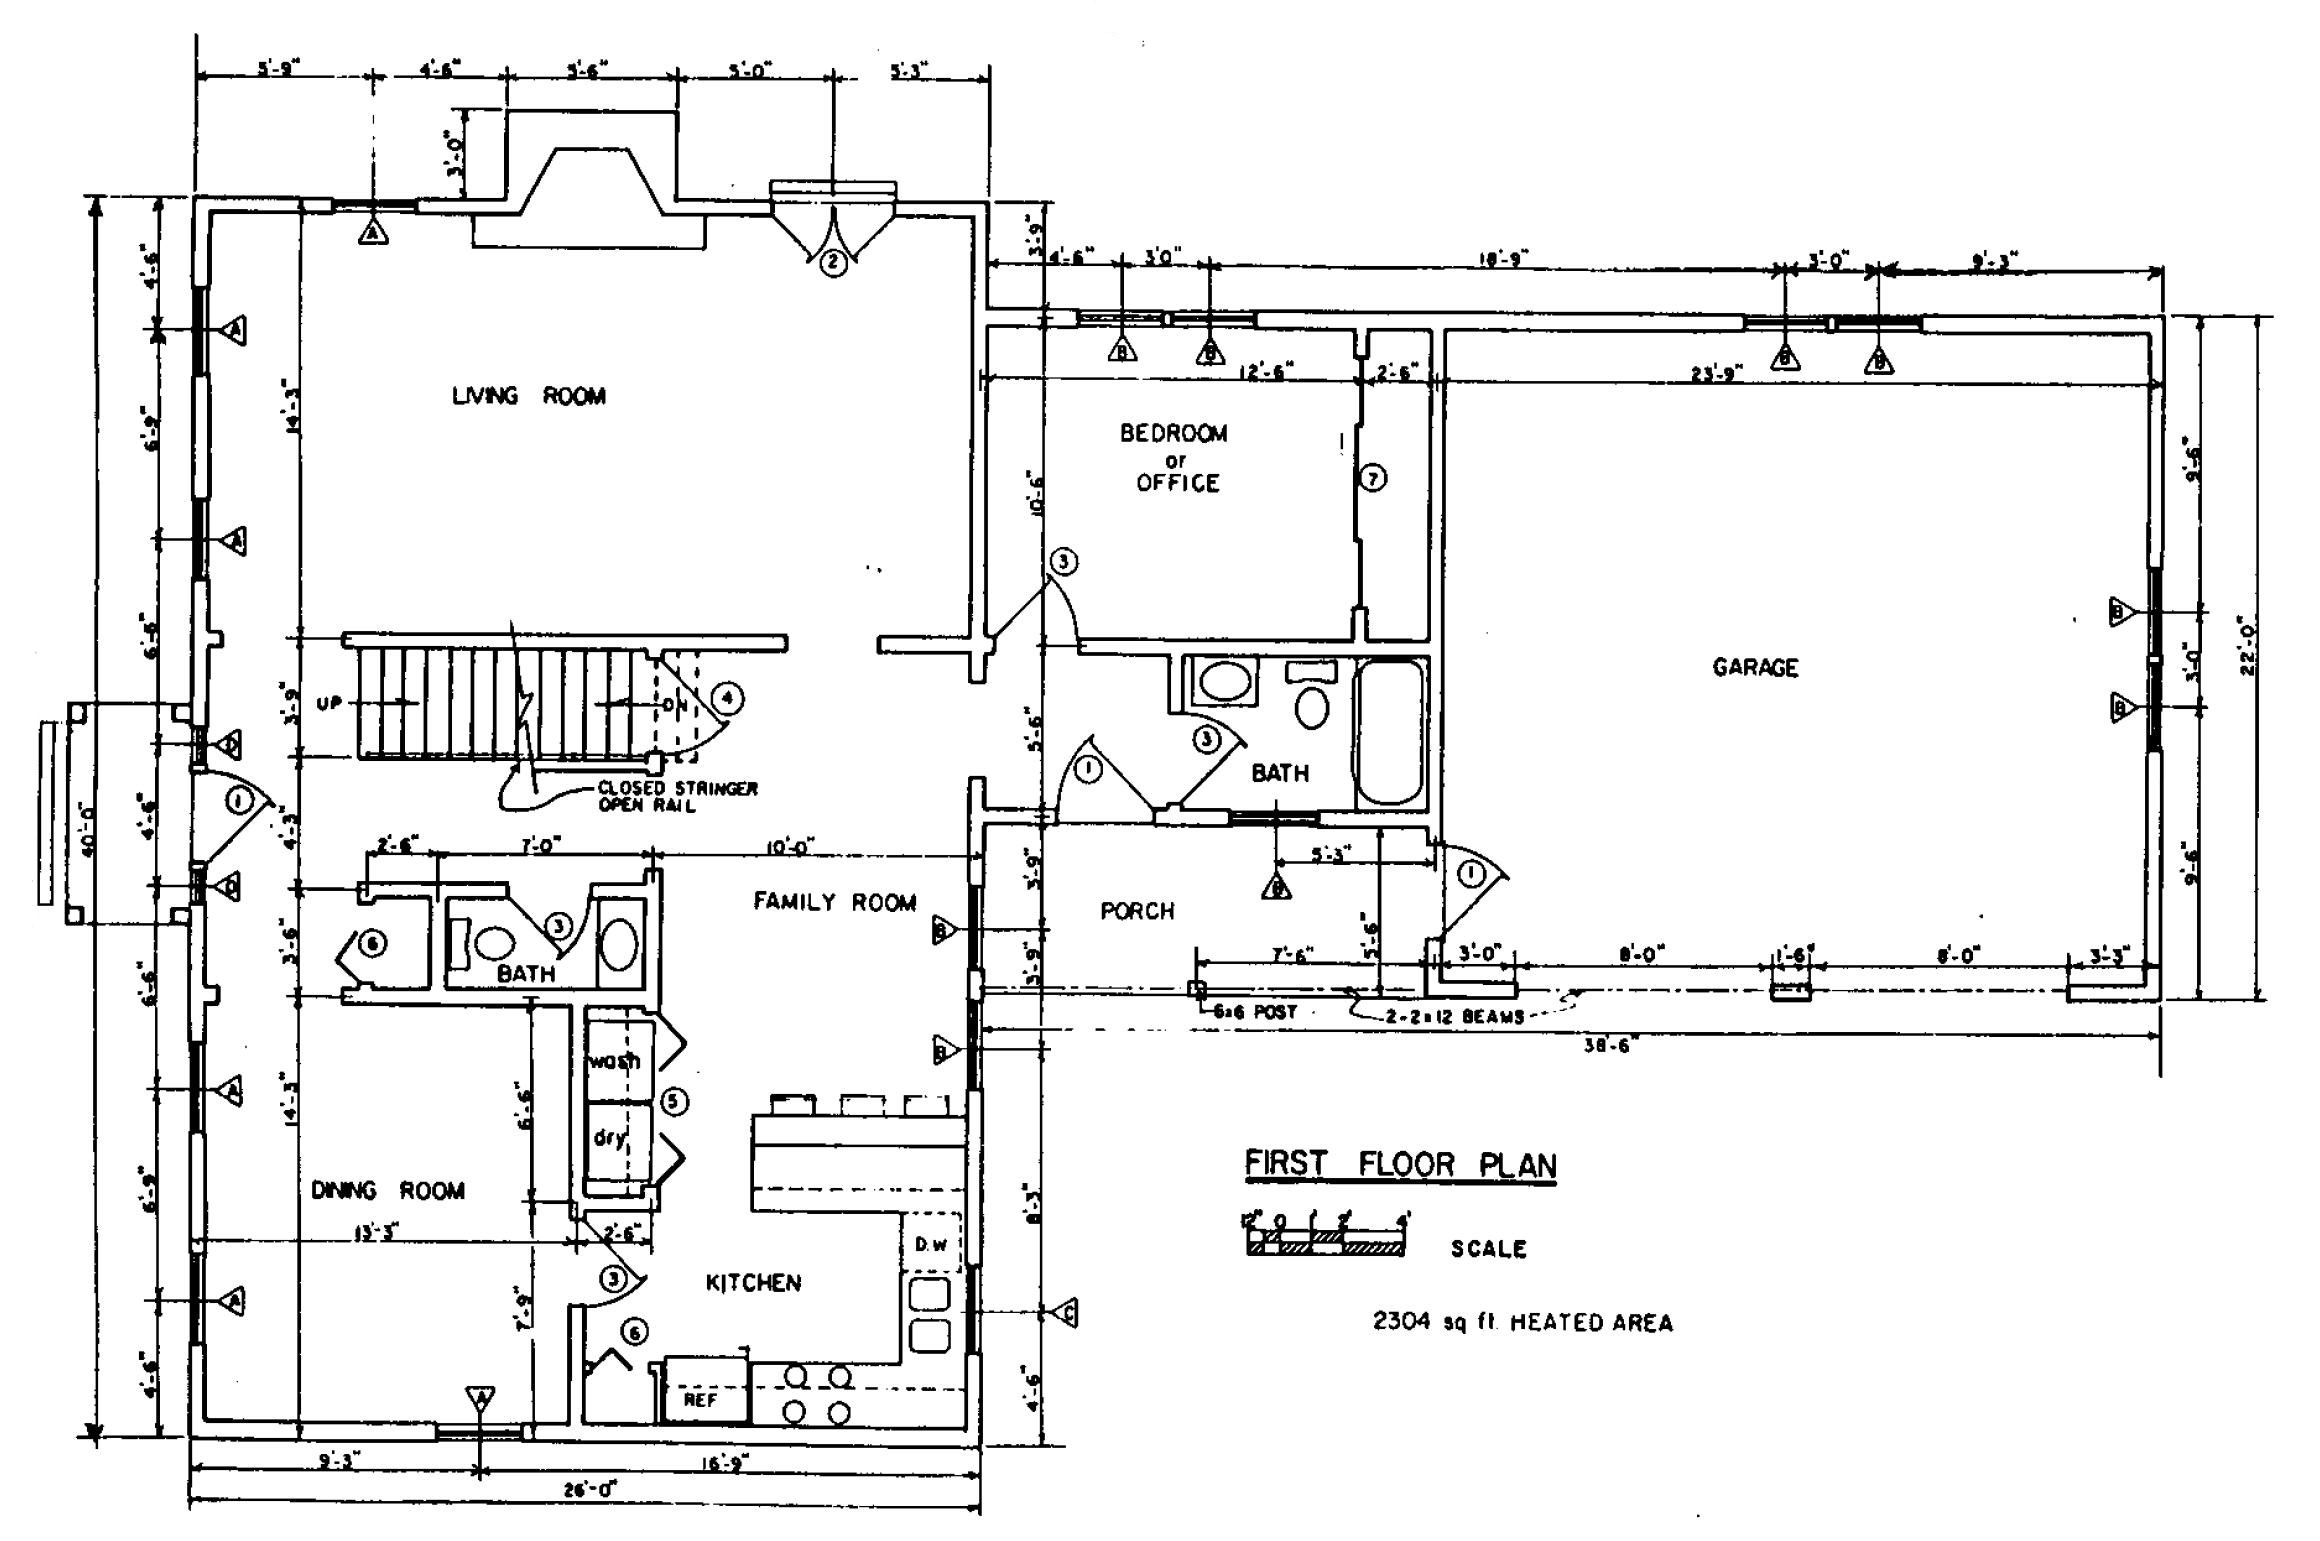 Printable Small House Plans Unique House Plans Free | Home Design Ideas - Free Printable Small House Plans